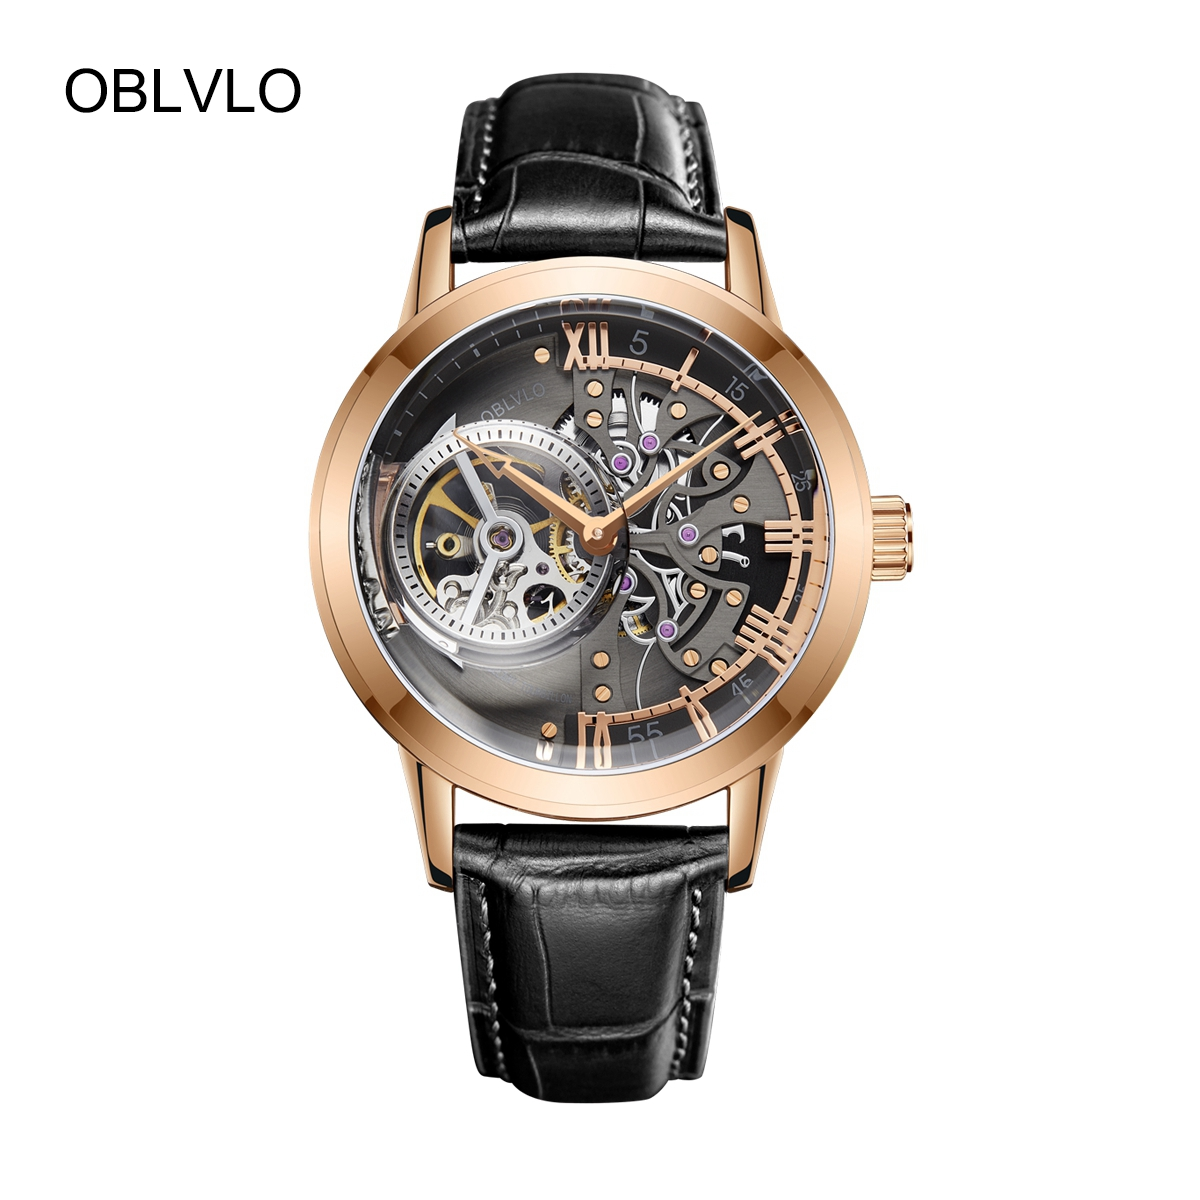 OBLVLO Skeleton Mens Watches Black Steel Automatic Watches Leather Strap Tourbillon Watch OBL8238-PBB